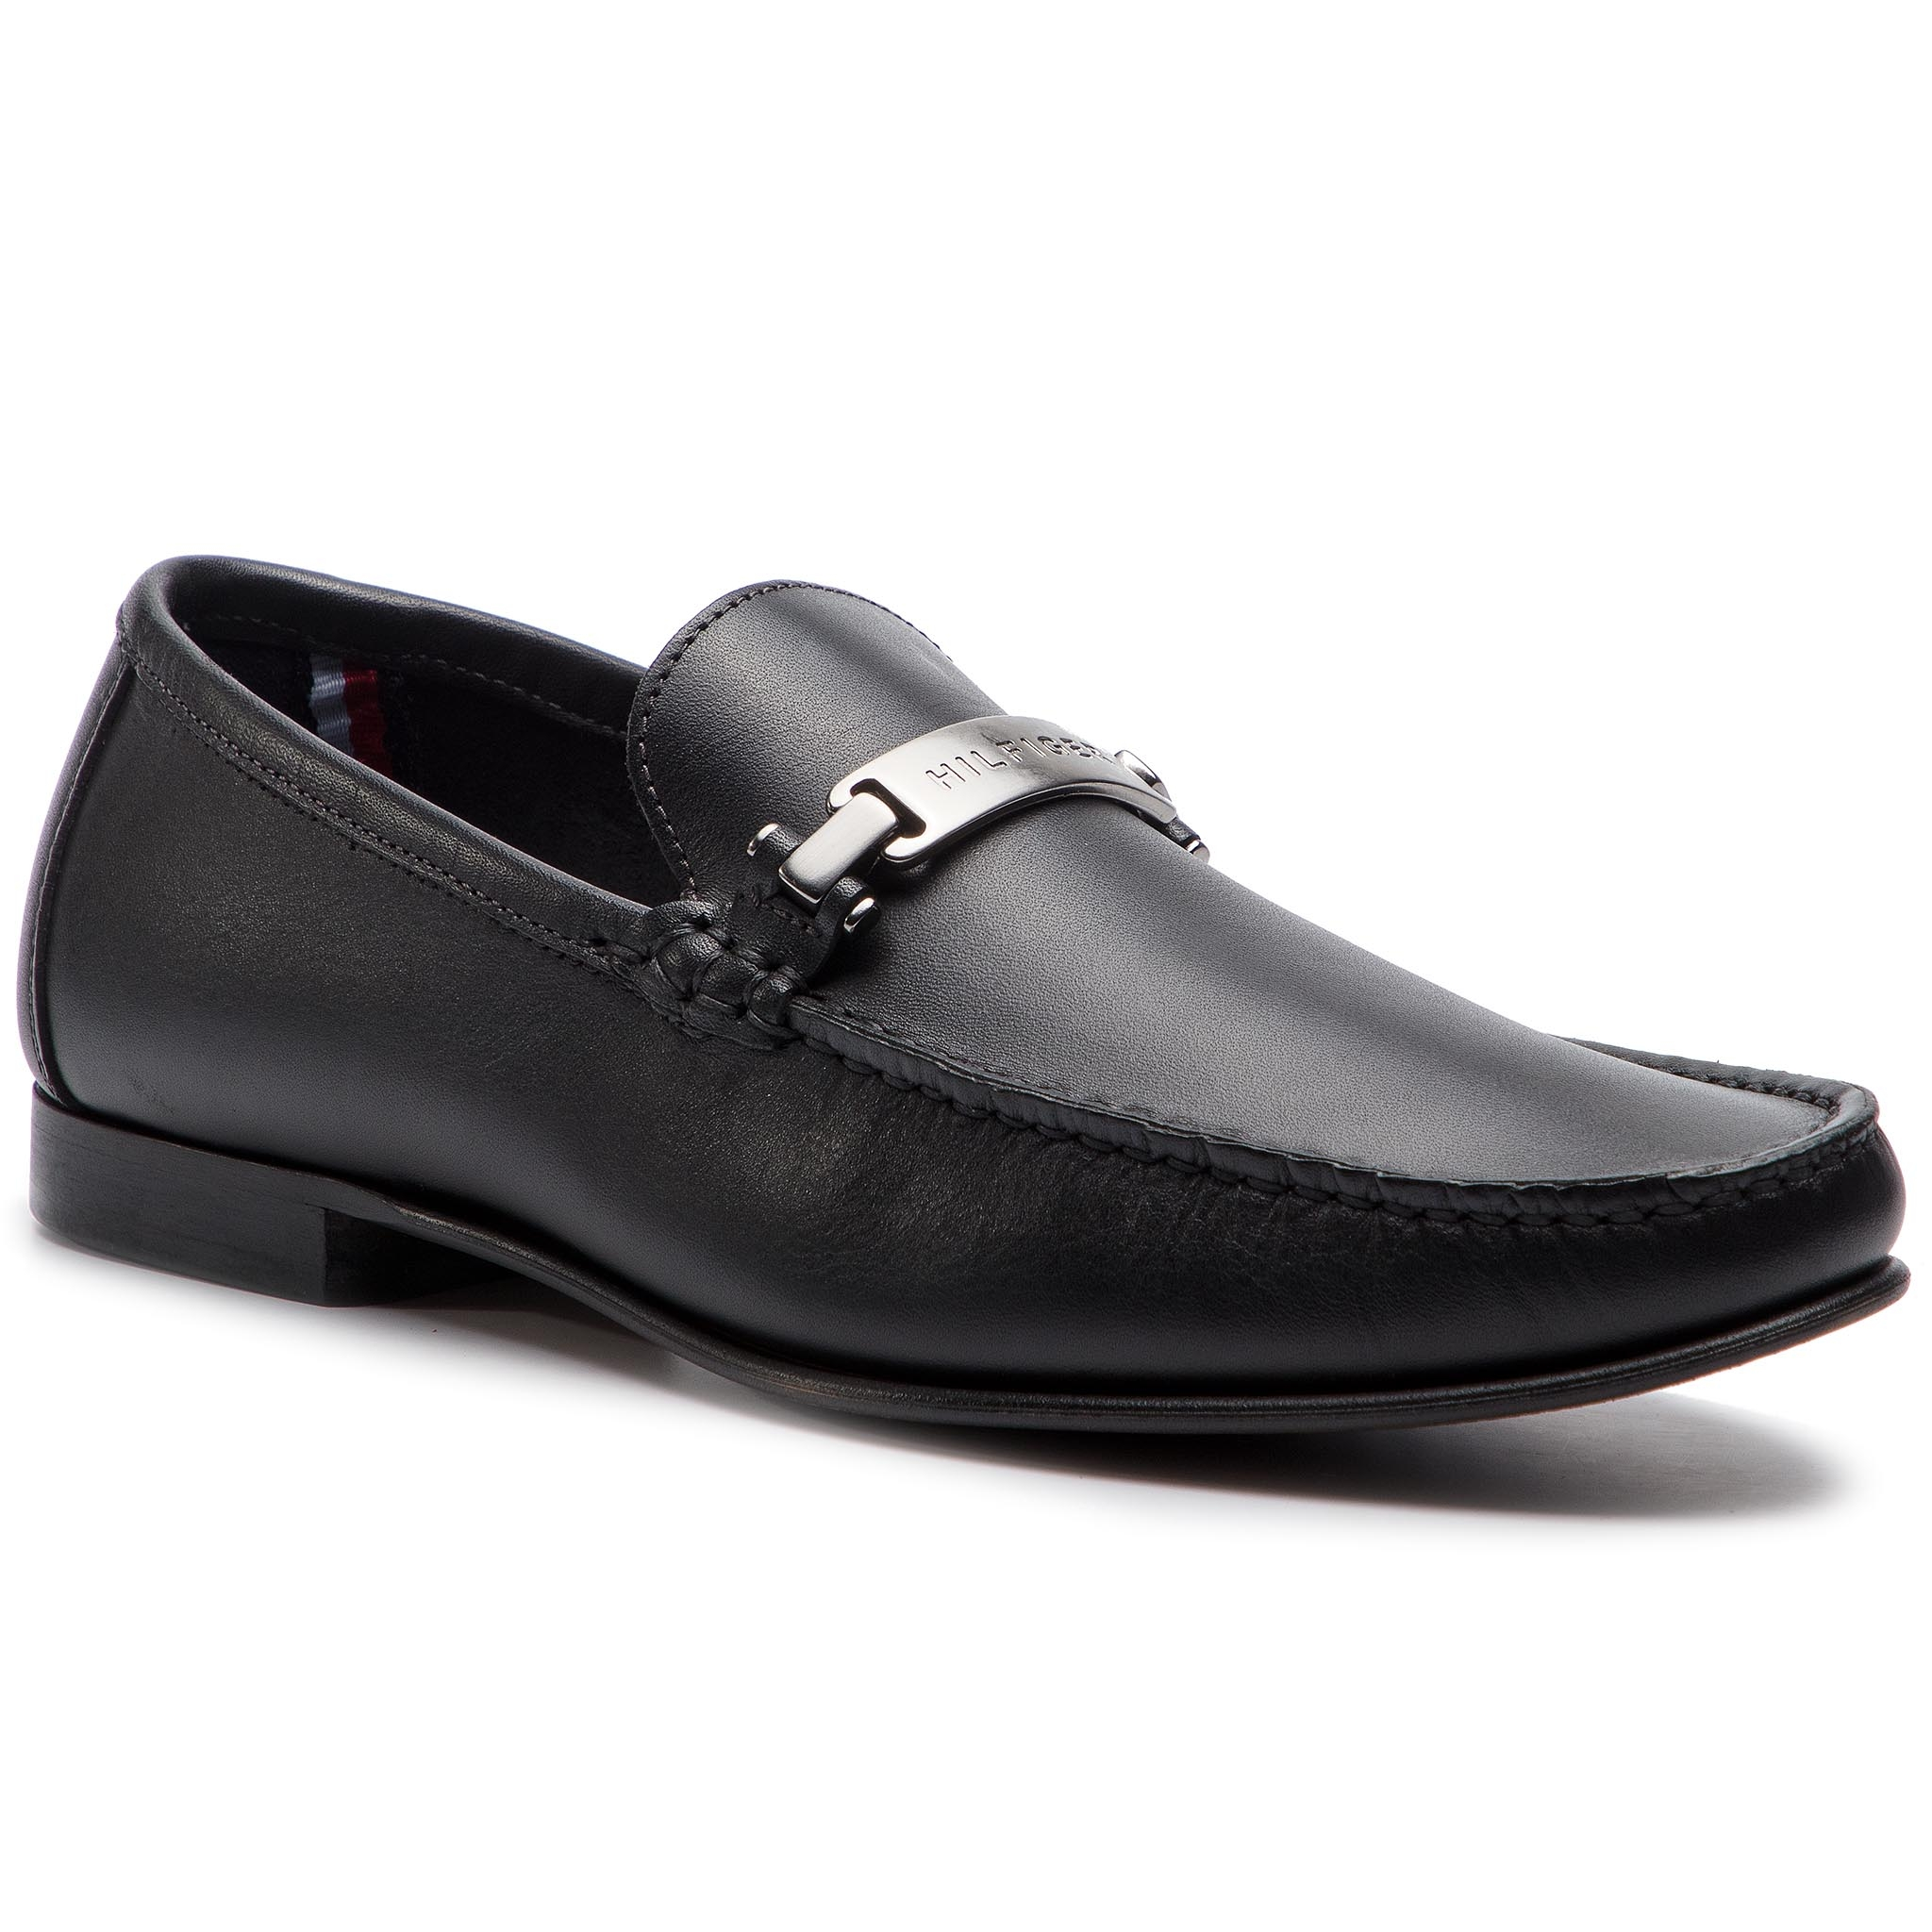 Mokasíny TOMMY HILFIGER - Core Hardware Leather Loafer FM0FM02207 Black 990.  Mokasíny TOMMY HILFIGER - Core Hardware Leather Loafer FM0FM02207 ... 6bb63dd29fa